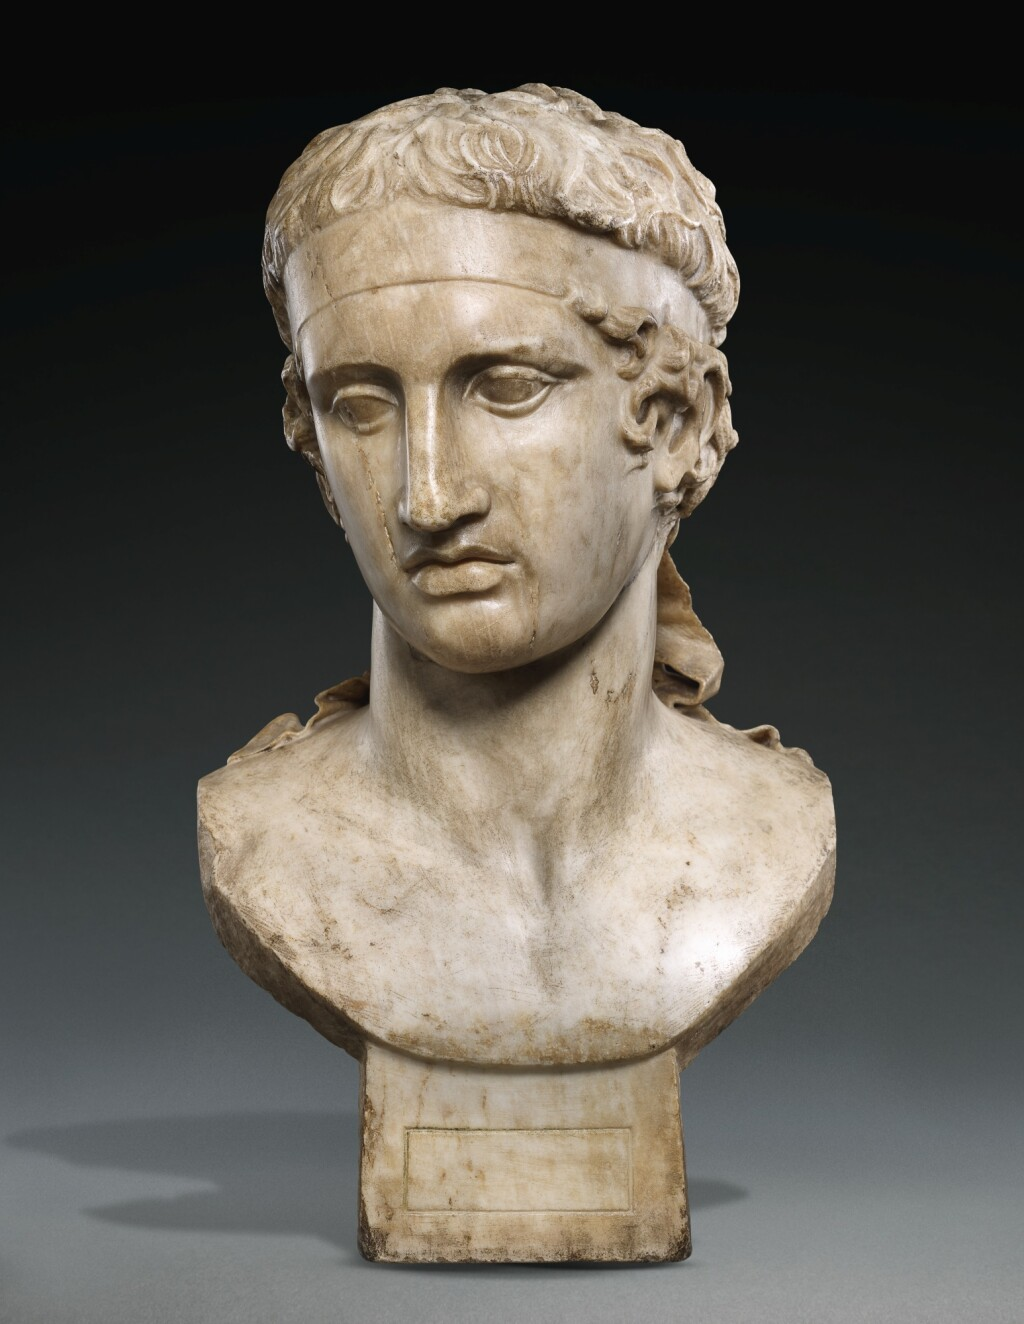 A FRAGMENTARY ROMAN MARBLE HEAD OF THE DIADUMENOS, CIRCA 2ND CENTURY A.D., WITH MID 17TH CENTURY OR EARLIER RESTORATIONS